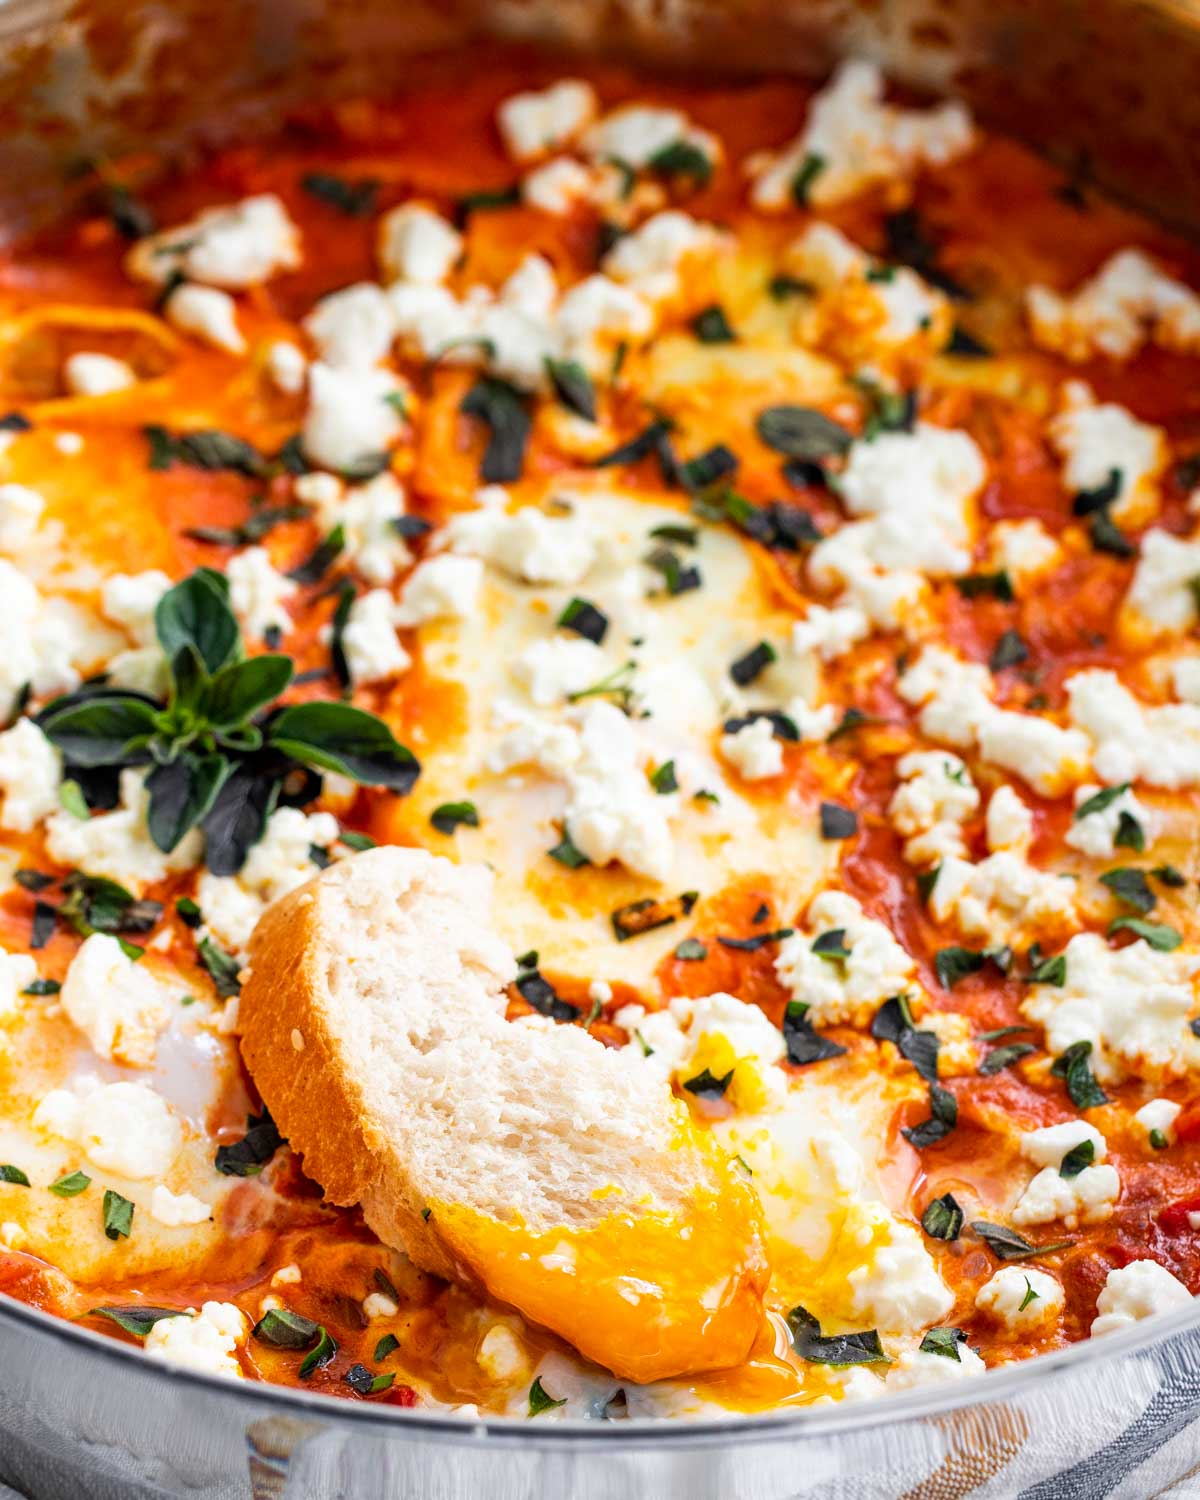 shakshuka in a skillet with a piece of bread dipped in an egg.